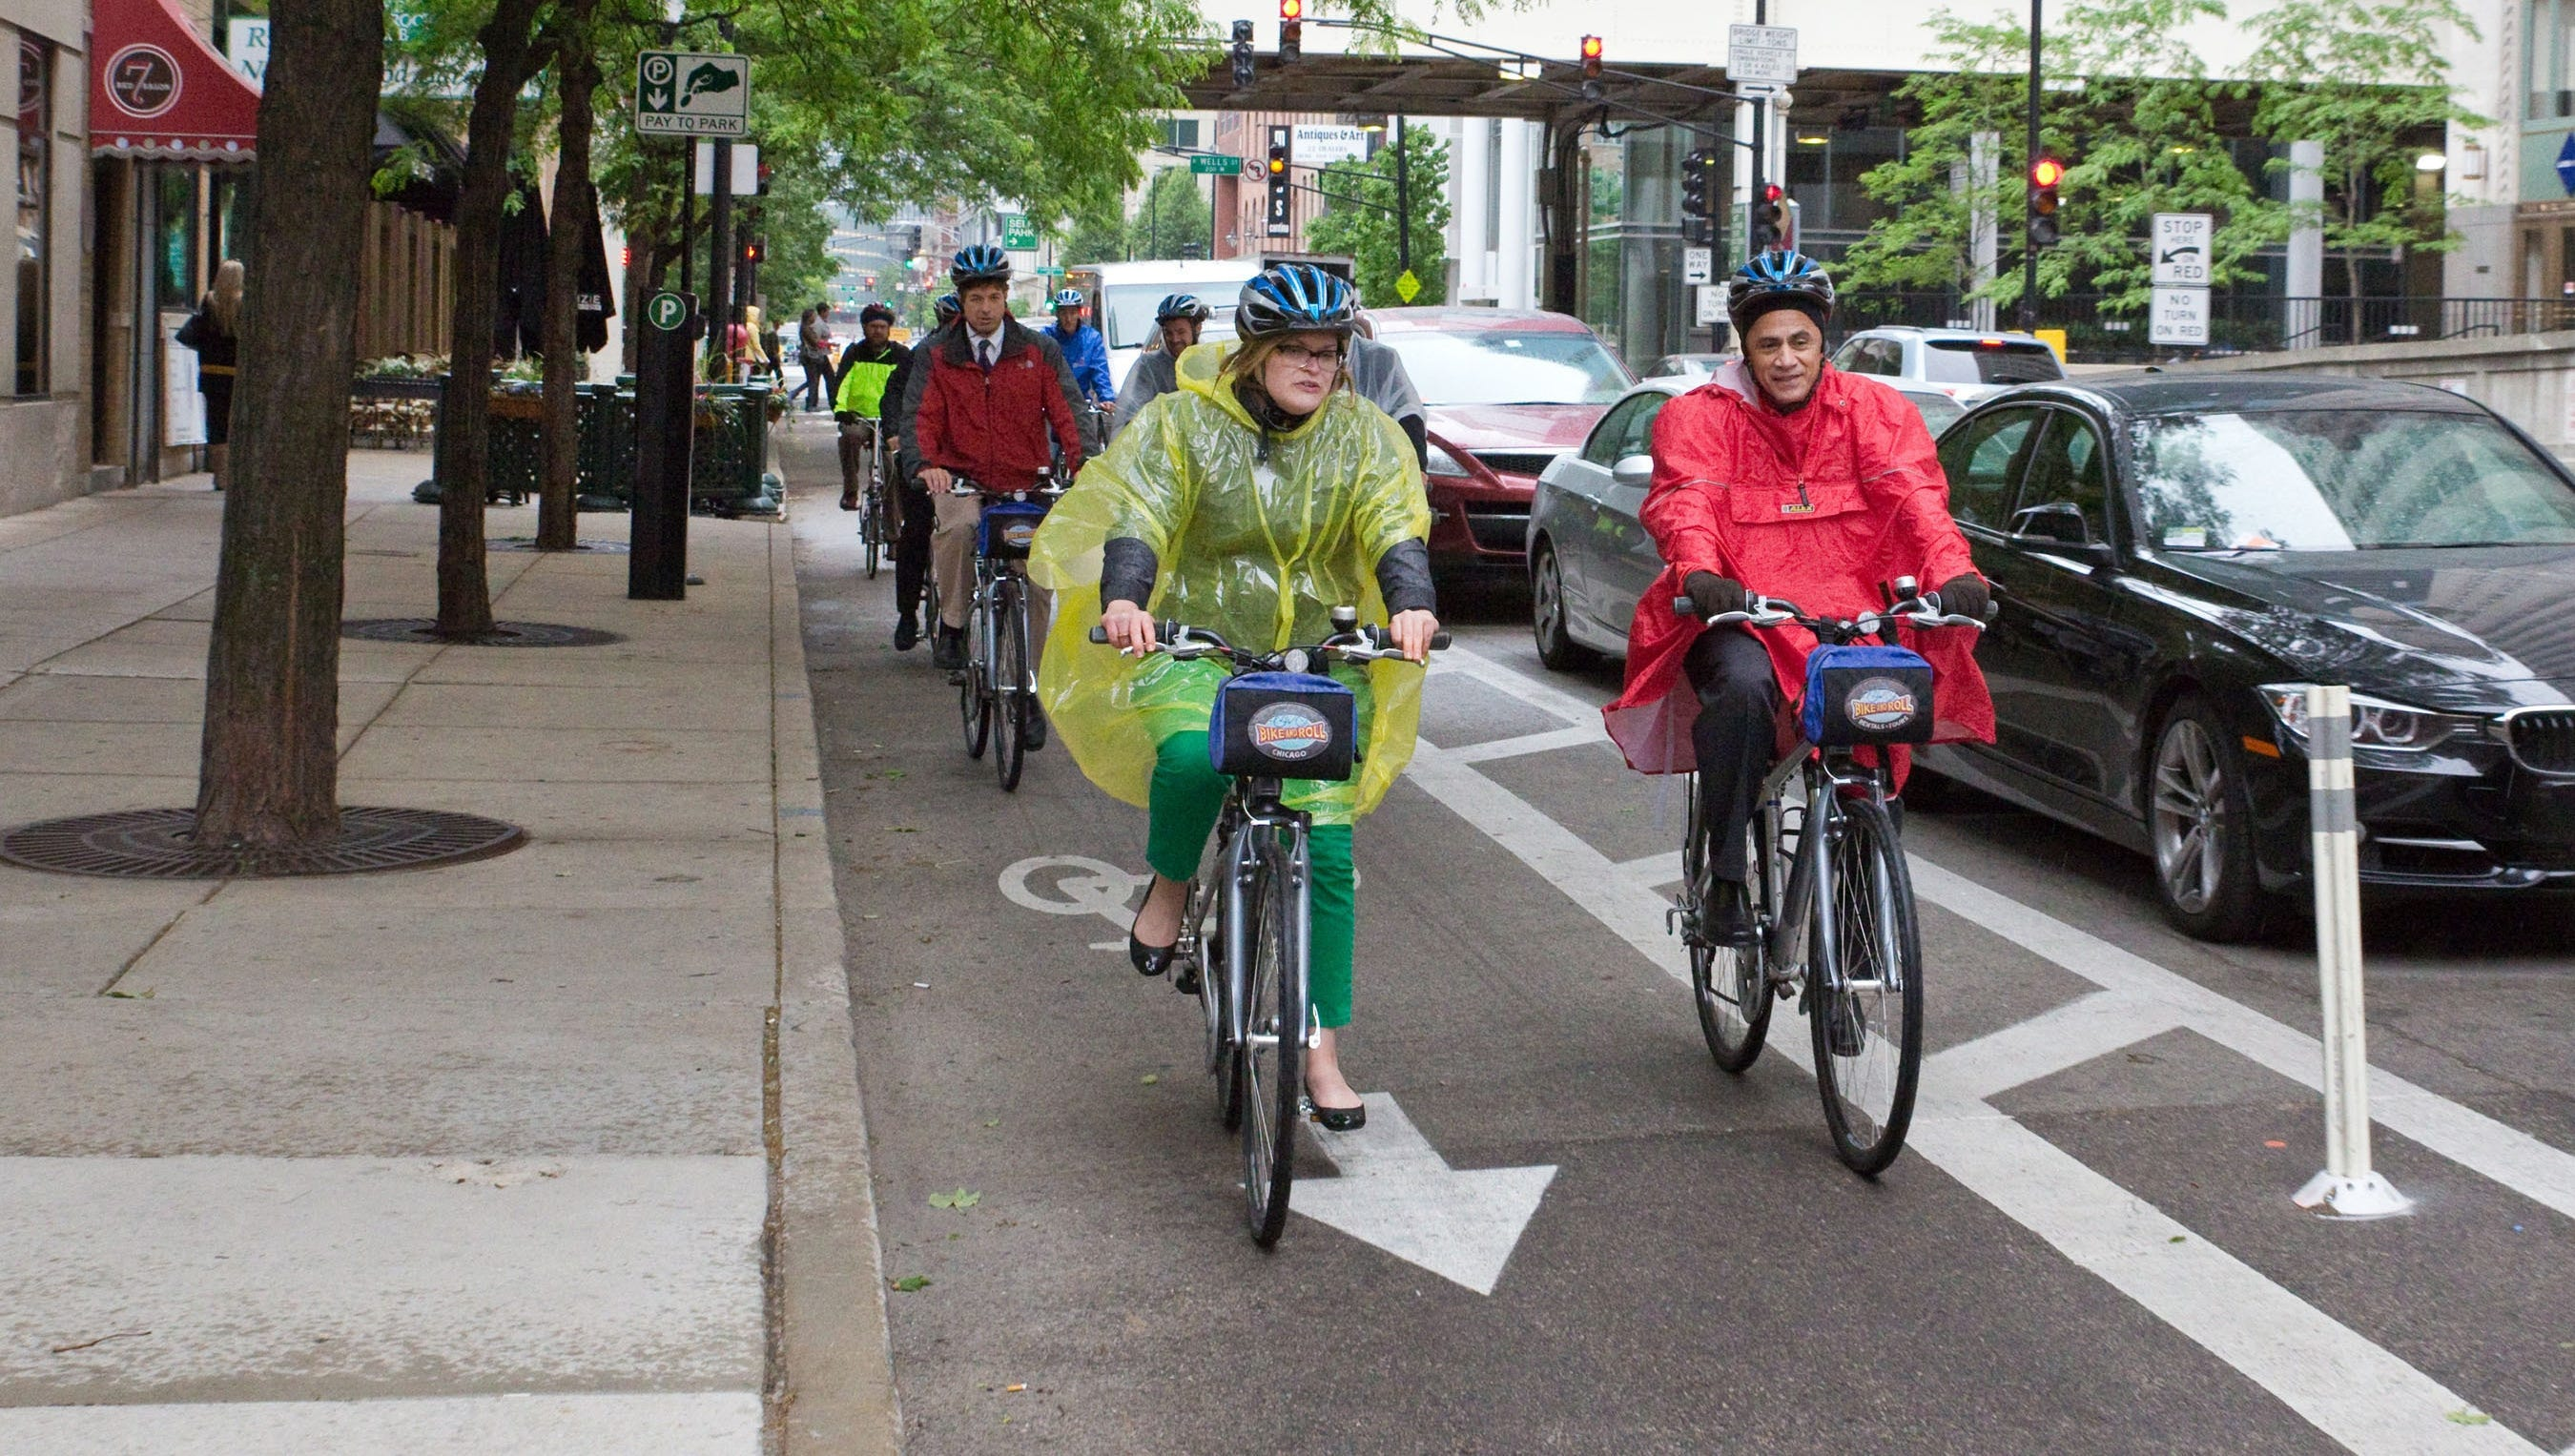 More protected lanes for bicyclists pop up in cities